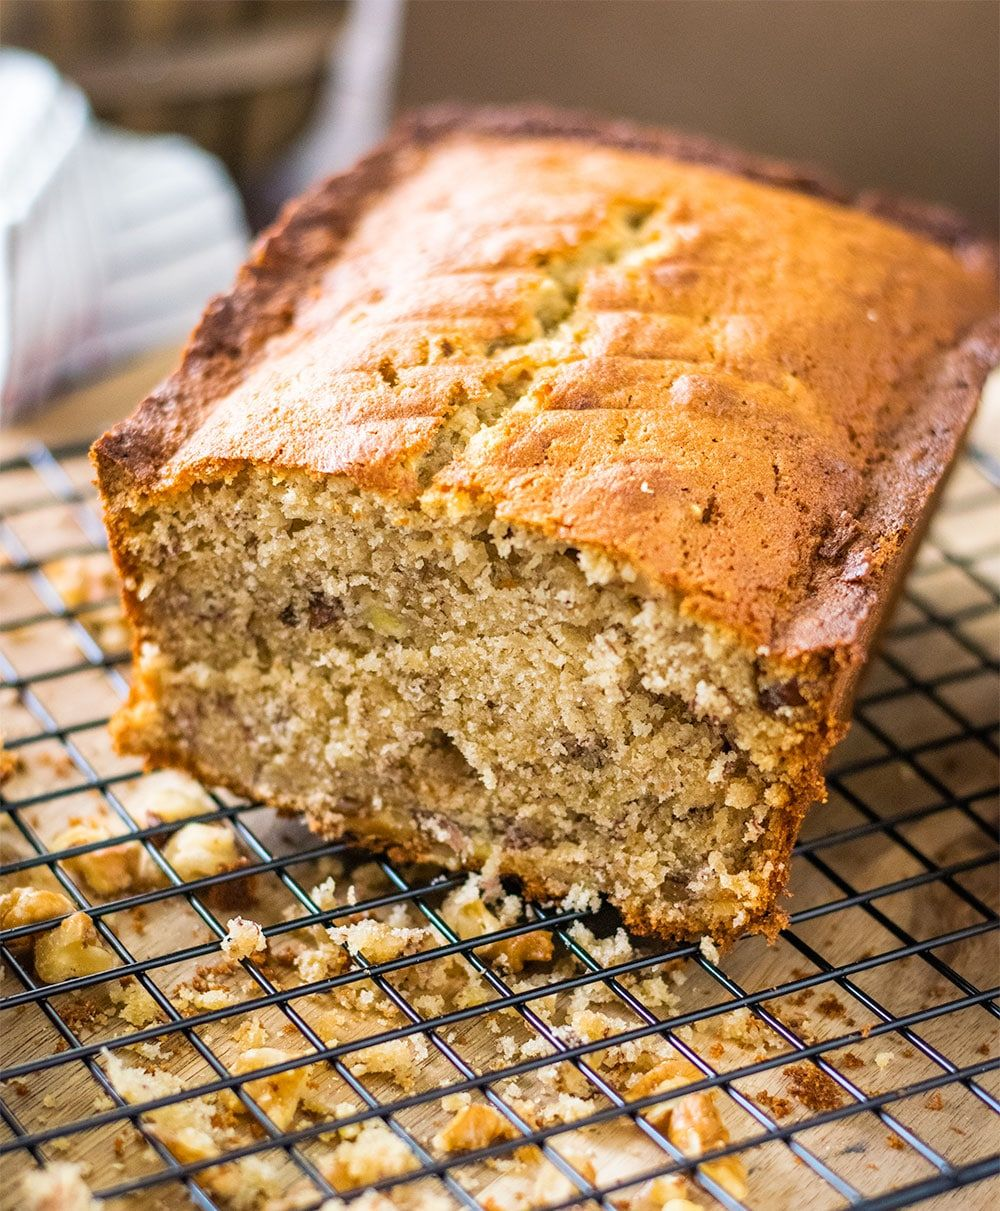 The Best Banana Bread Recipe Starts With Brown Sugar Is Loaded With Bananas Hints Of Vanilla All Combined Into In 2020 Best Banana Bread Banana Bread Recipes Recipes